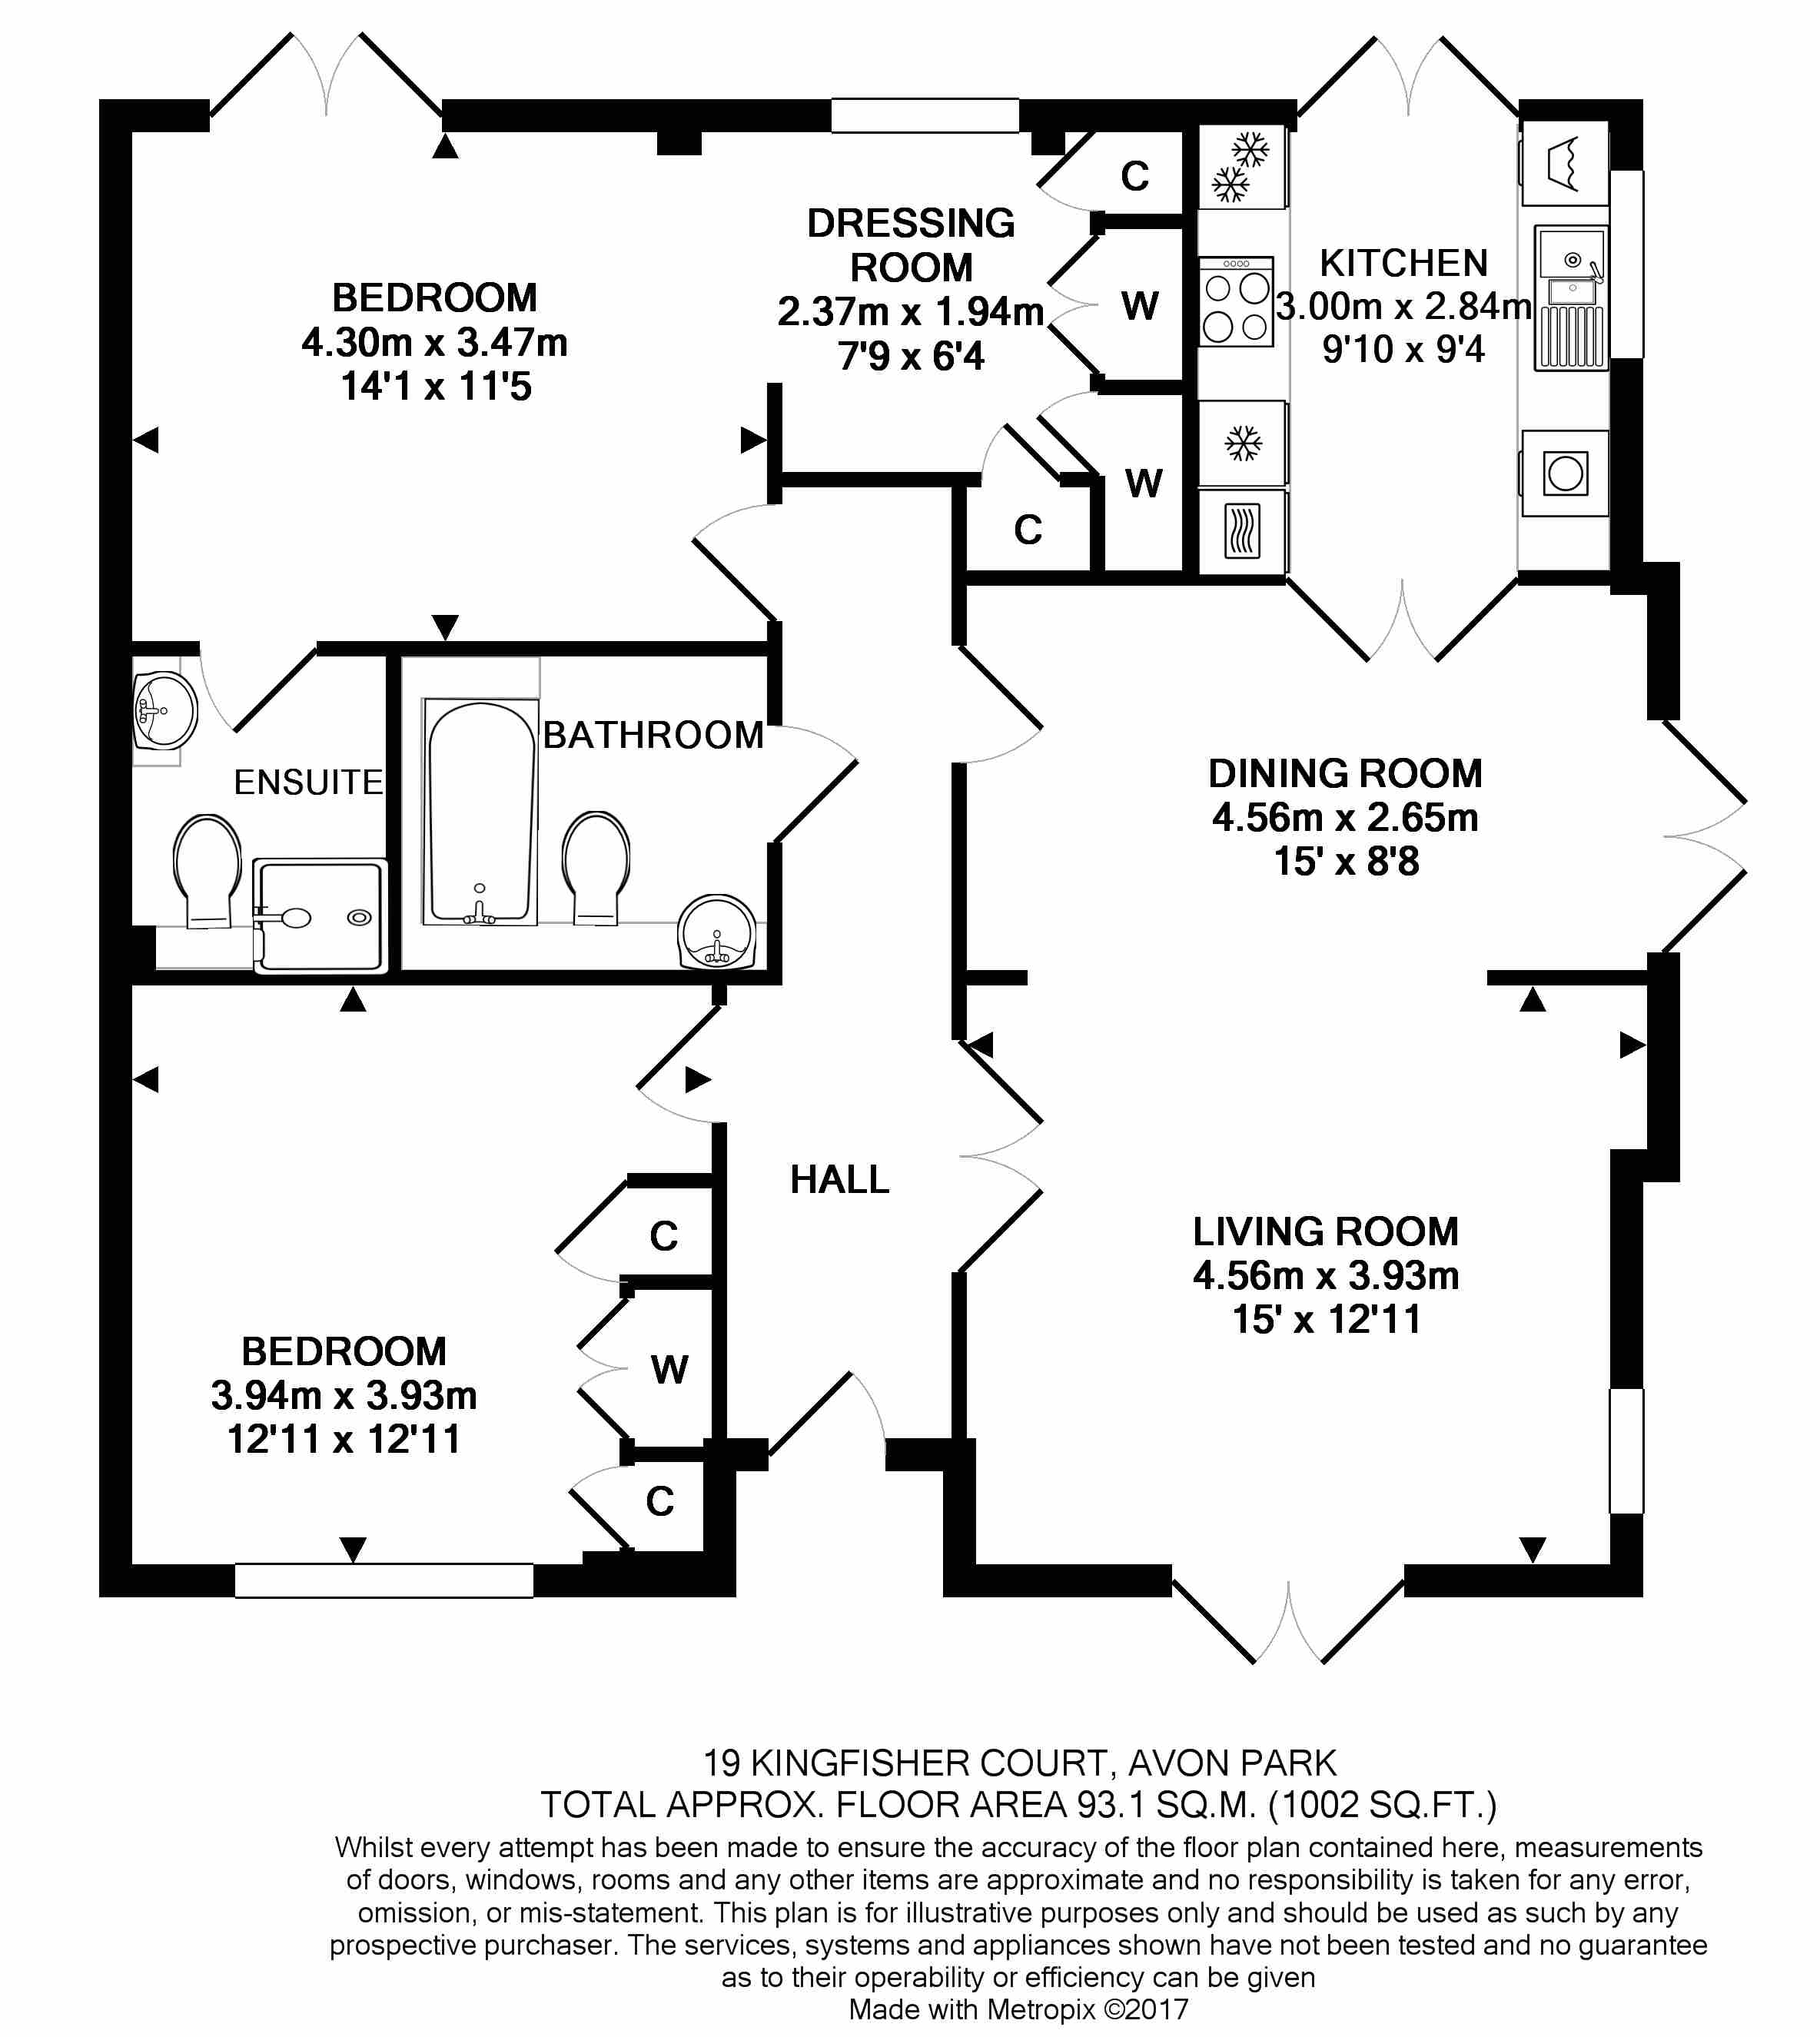 19 Kingfisher Court Floorplan